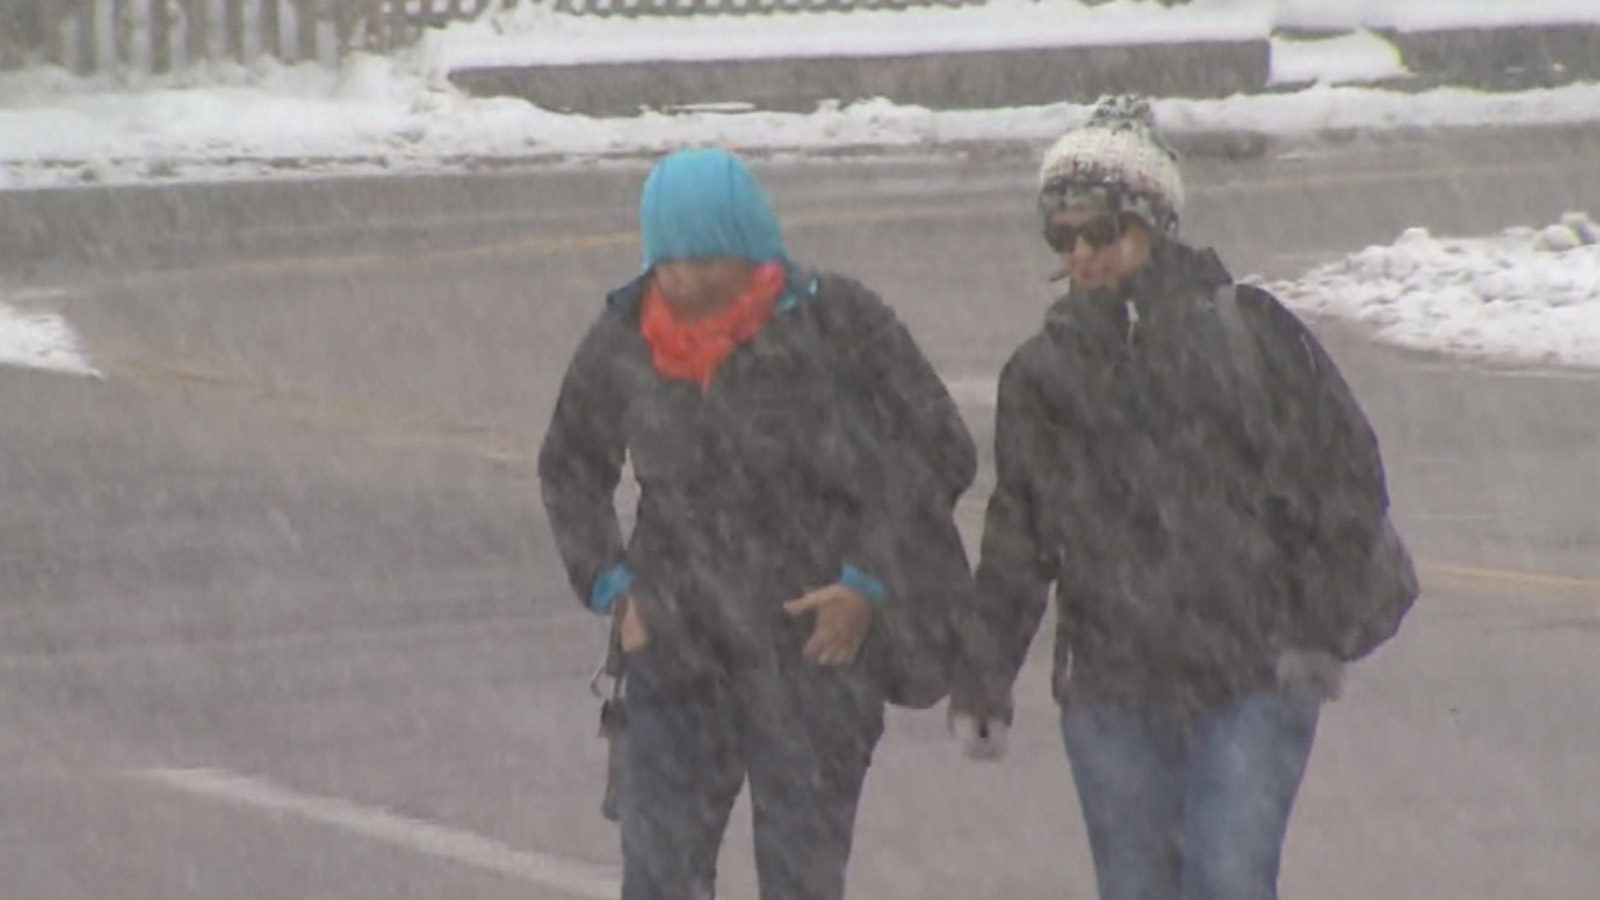 The spring snow surprised some visitors to Estes Park on Thursday (credit: CBS)